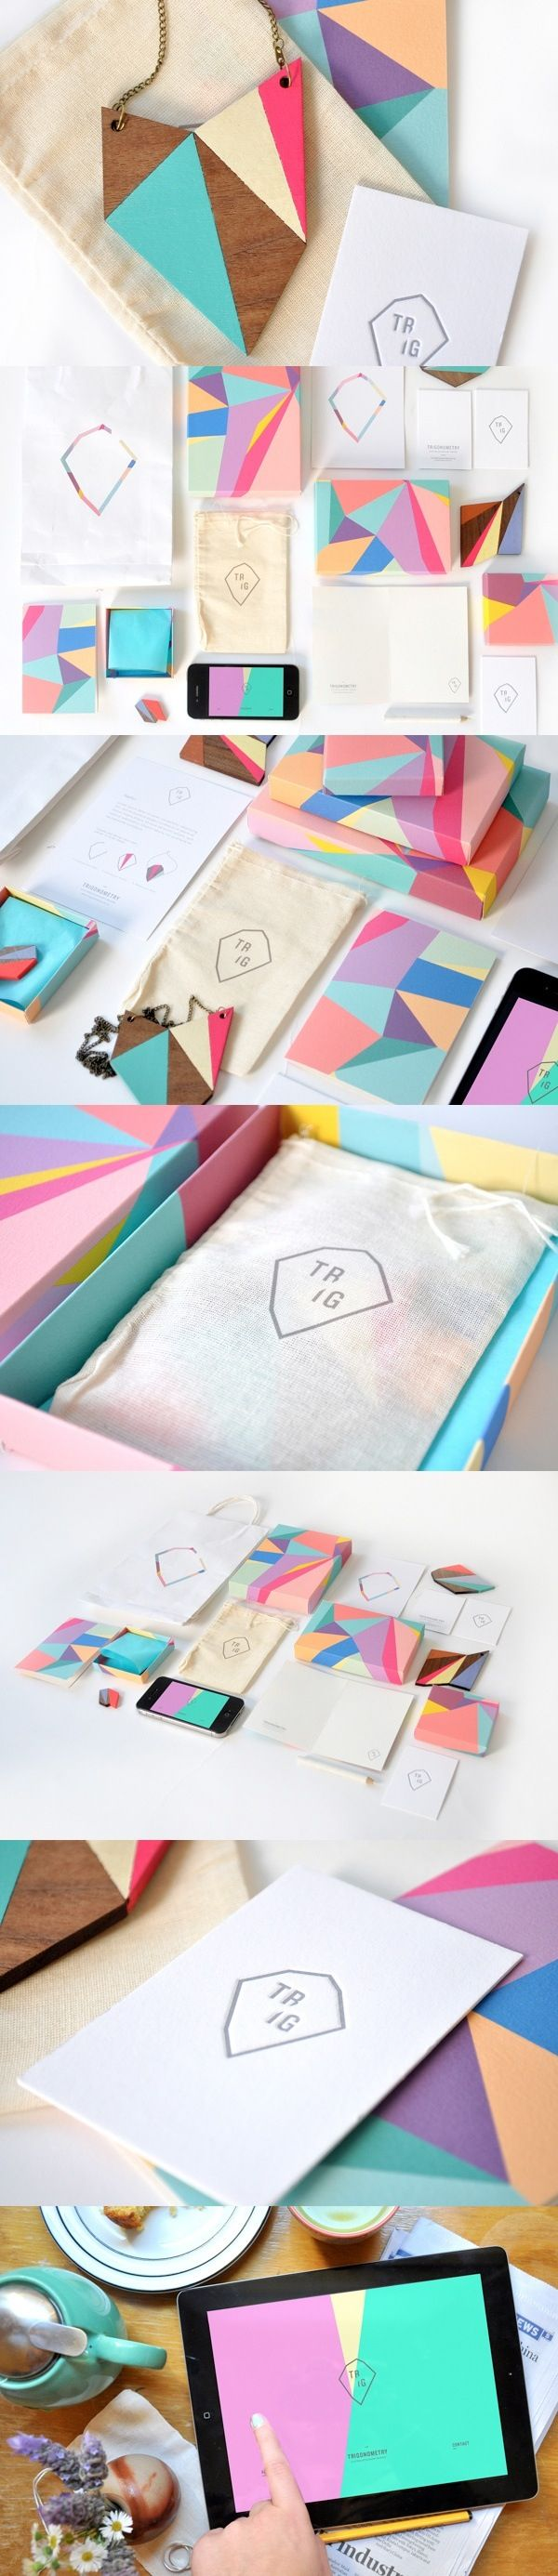 Who said we should only use two main colors when branding? Love this! #branding